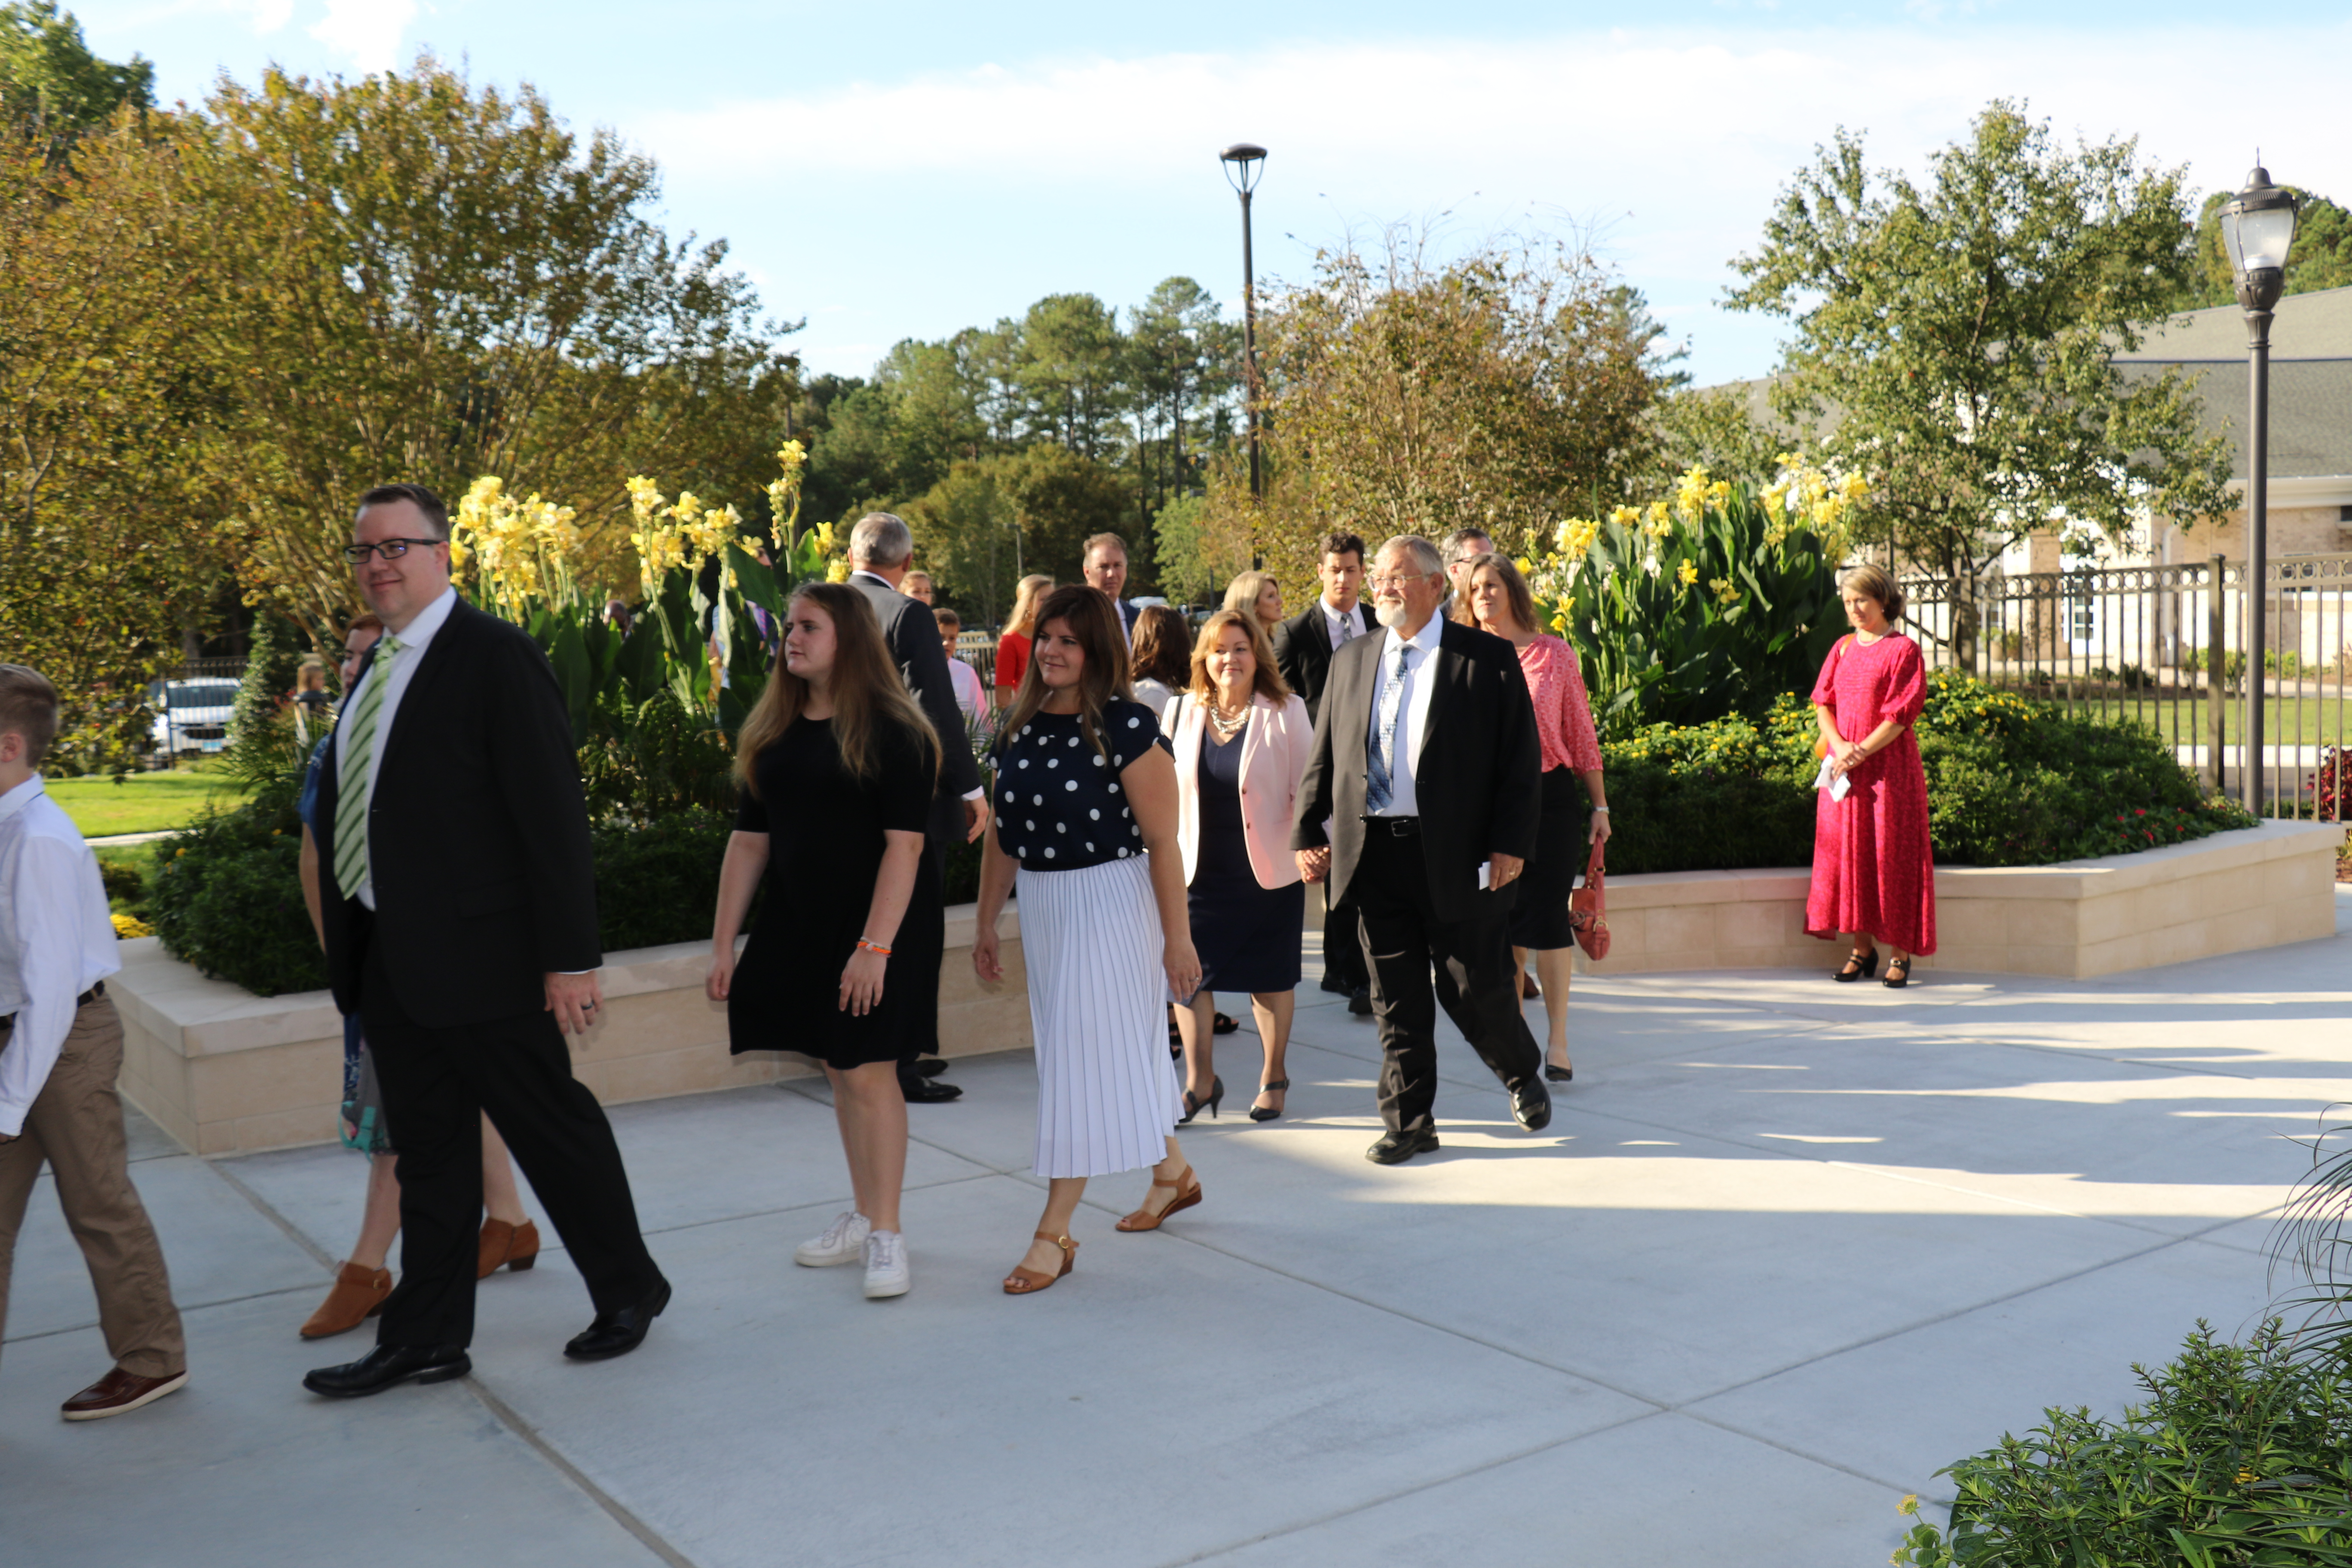 North Carolina Latter-day Saints arrive for the Oct. 13, 2019, rededication of the Raleigh North Carolina Temple. The temple was rededicated almost two decades after its original dedication.